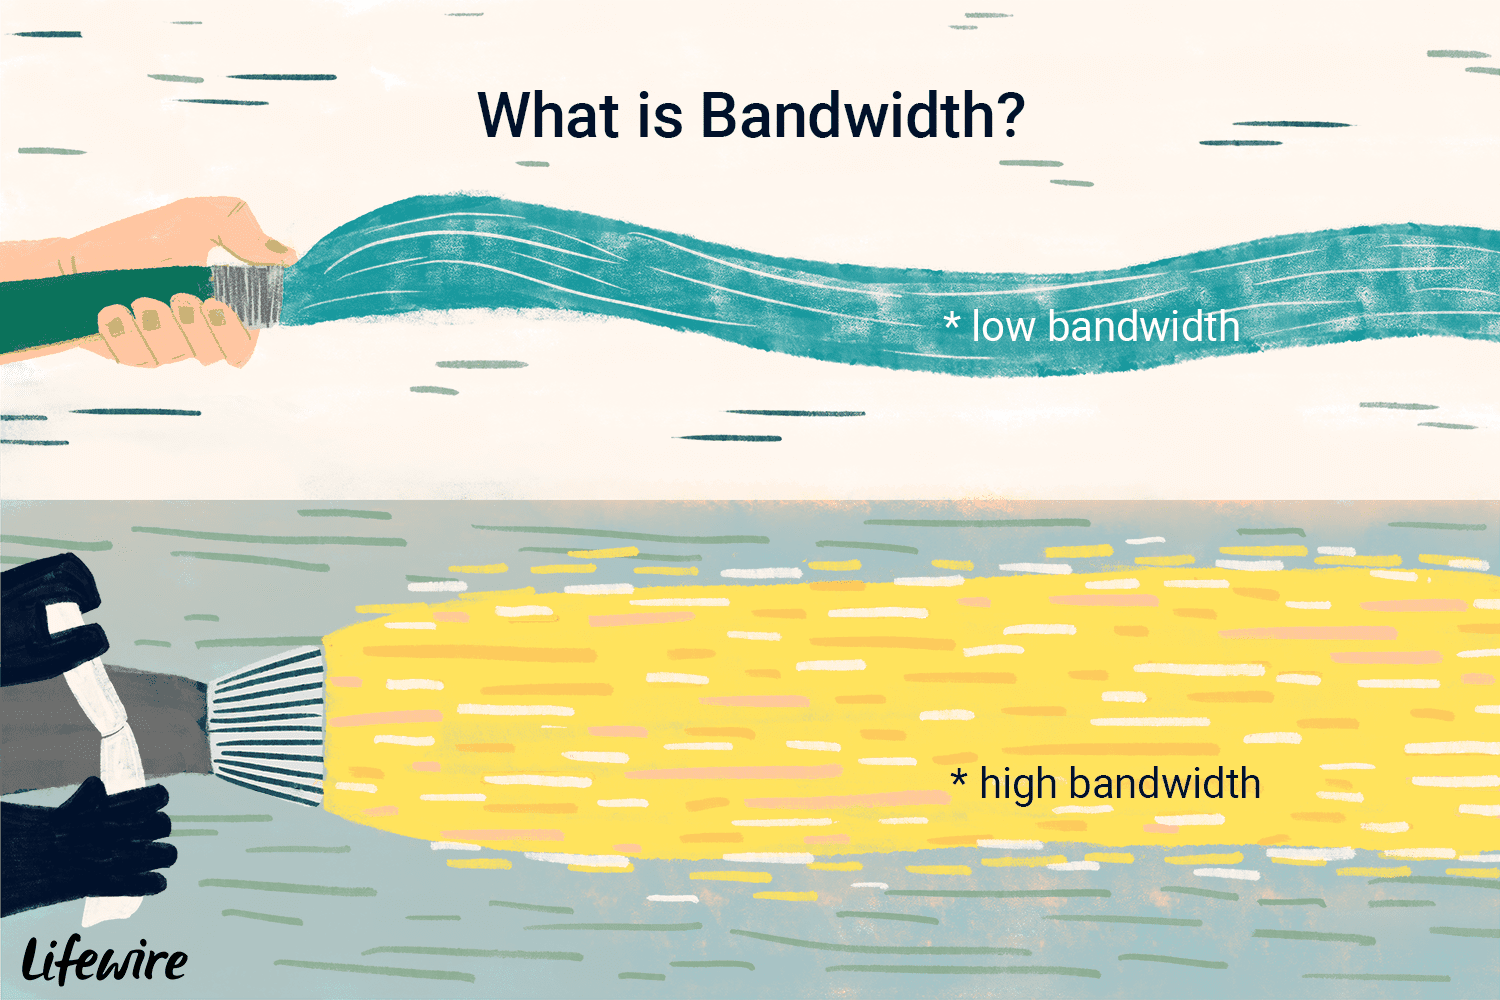 Bandwidth: What Is It and How Much Do You Need?